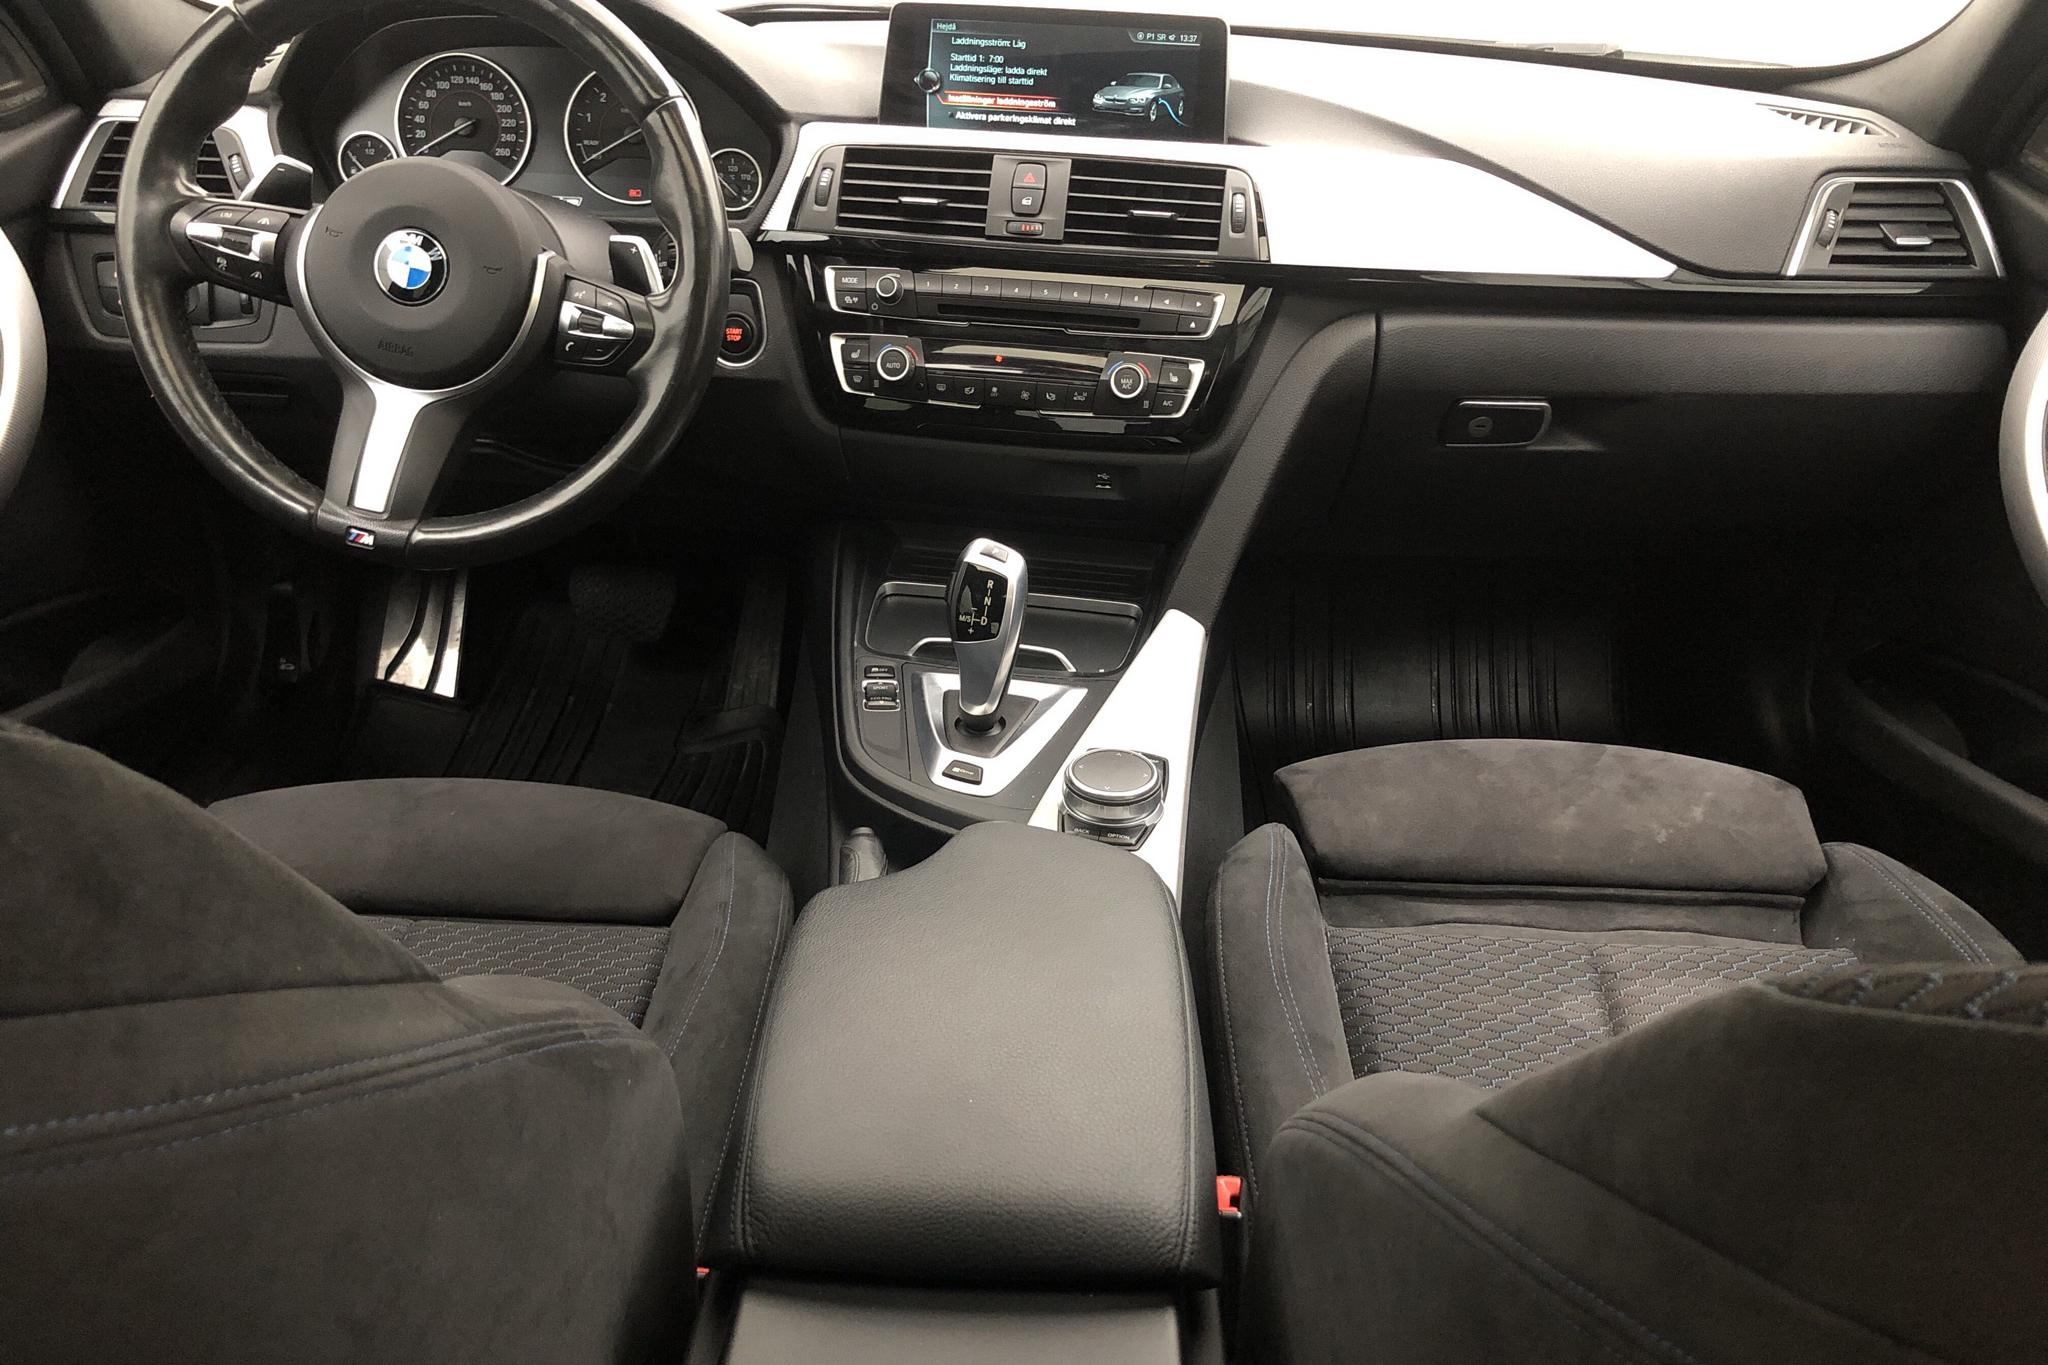 BMW 330e Sedan, F30 (252hk) - 58 830 km - Automatic - white - 2017